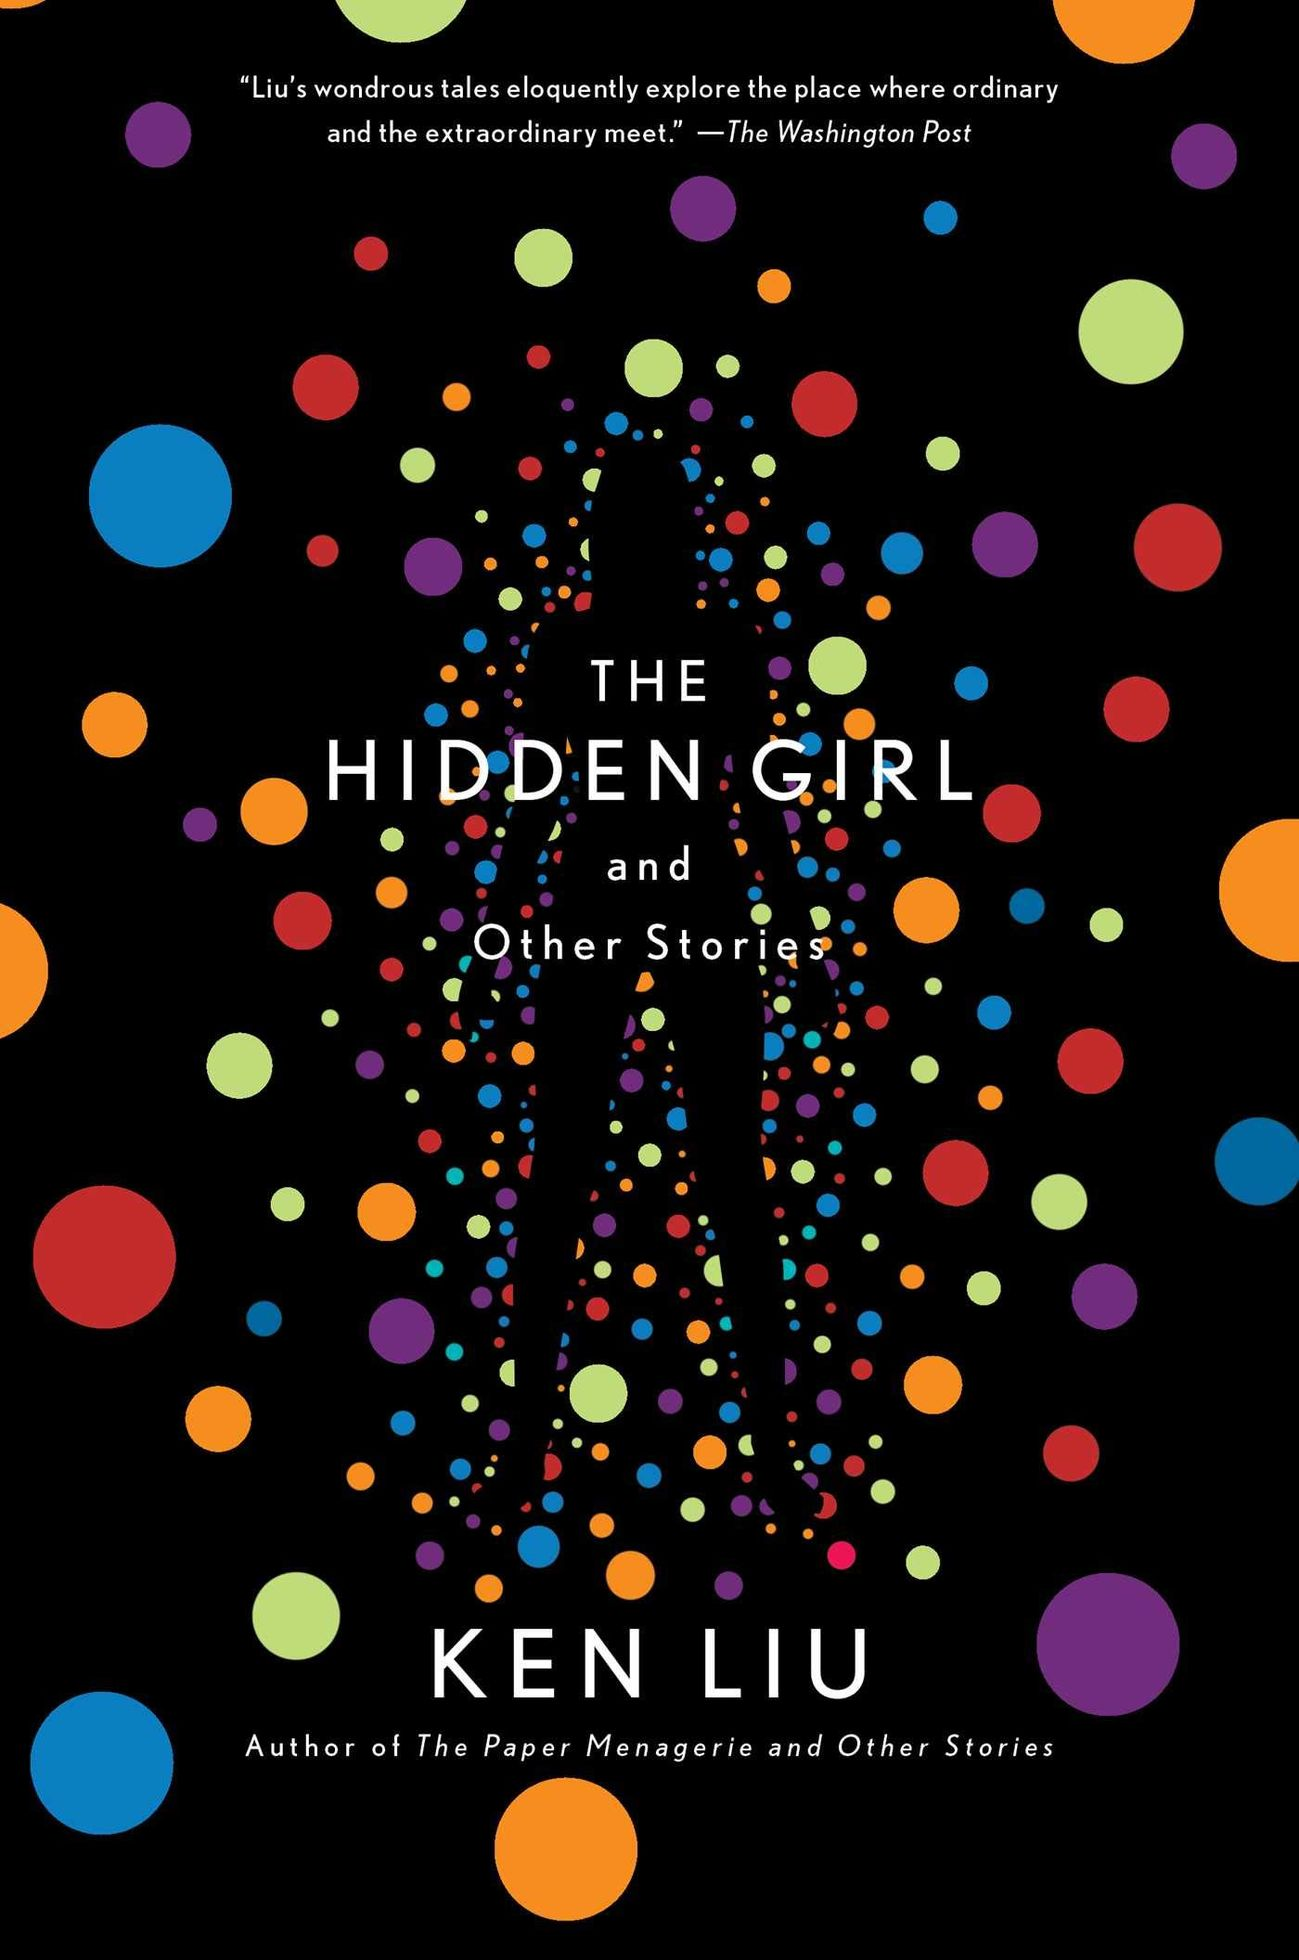 The Hidden Girl and Other Stories - Le nouveau recueil de Ken Liu